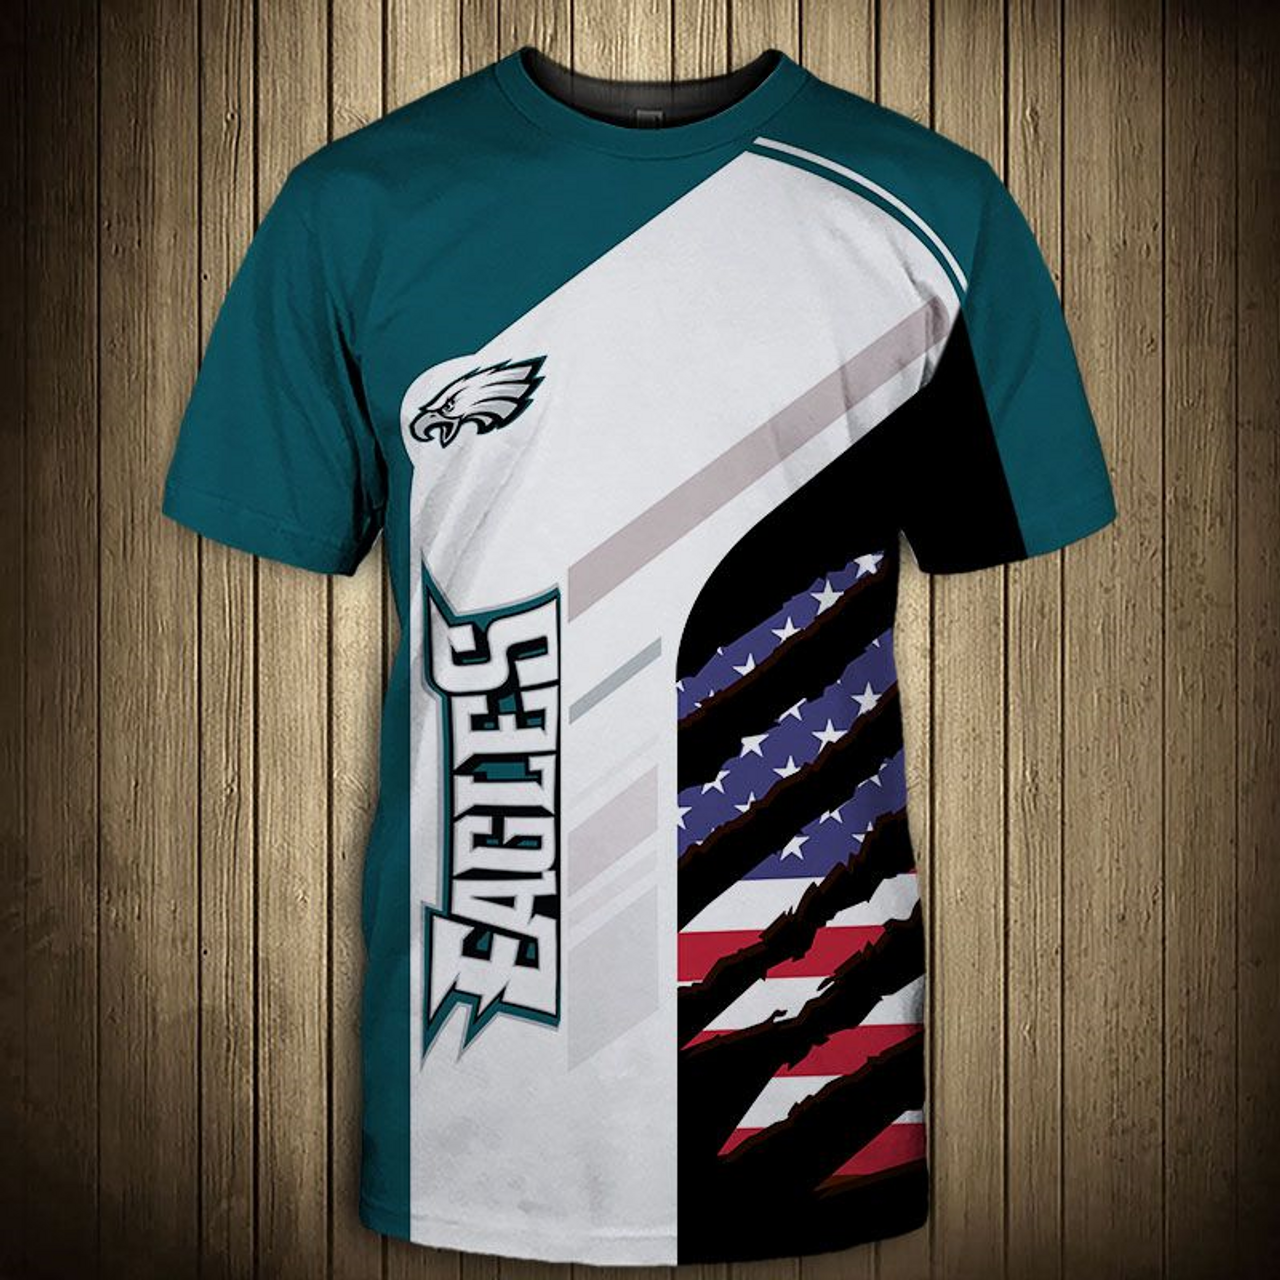 **(OFFICIAL-N.F.L.PHILADELPHIA-EAGLES-TRENDY-GAME-DAY-TEAM-TEES/CUSTOM-3D-GRAPHIC-PRINTED-DETAILED-DOUBLE-SIDED-ALL-OVER/CLASSIC-OFFICIAL-EAGLES-LOGOS & EAGLES-OFFICIAL-TEAM-COLORS/PREMIUM-STYLISH-N.F.L.EAGLES-TEAM-PATRIOTIC-TEE-SHIRTS)**